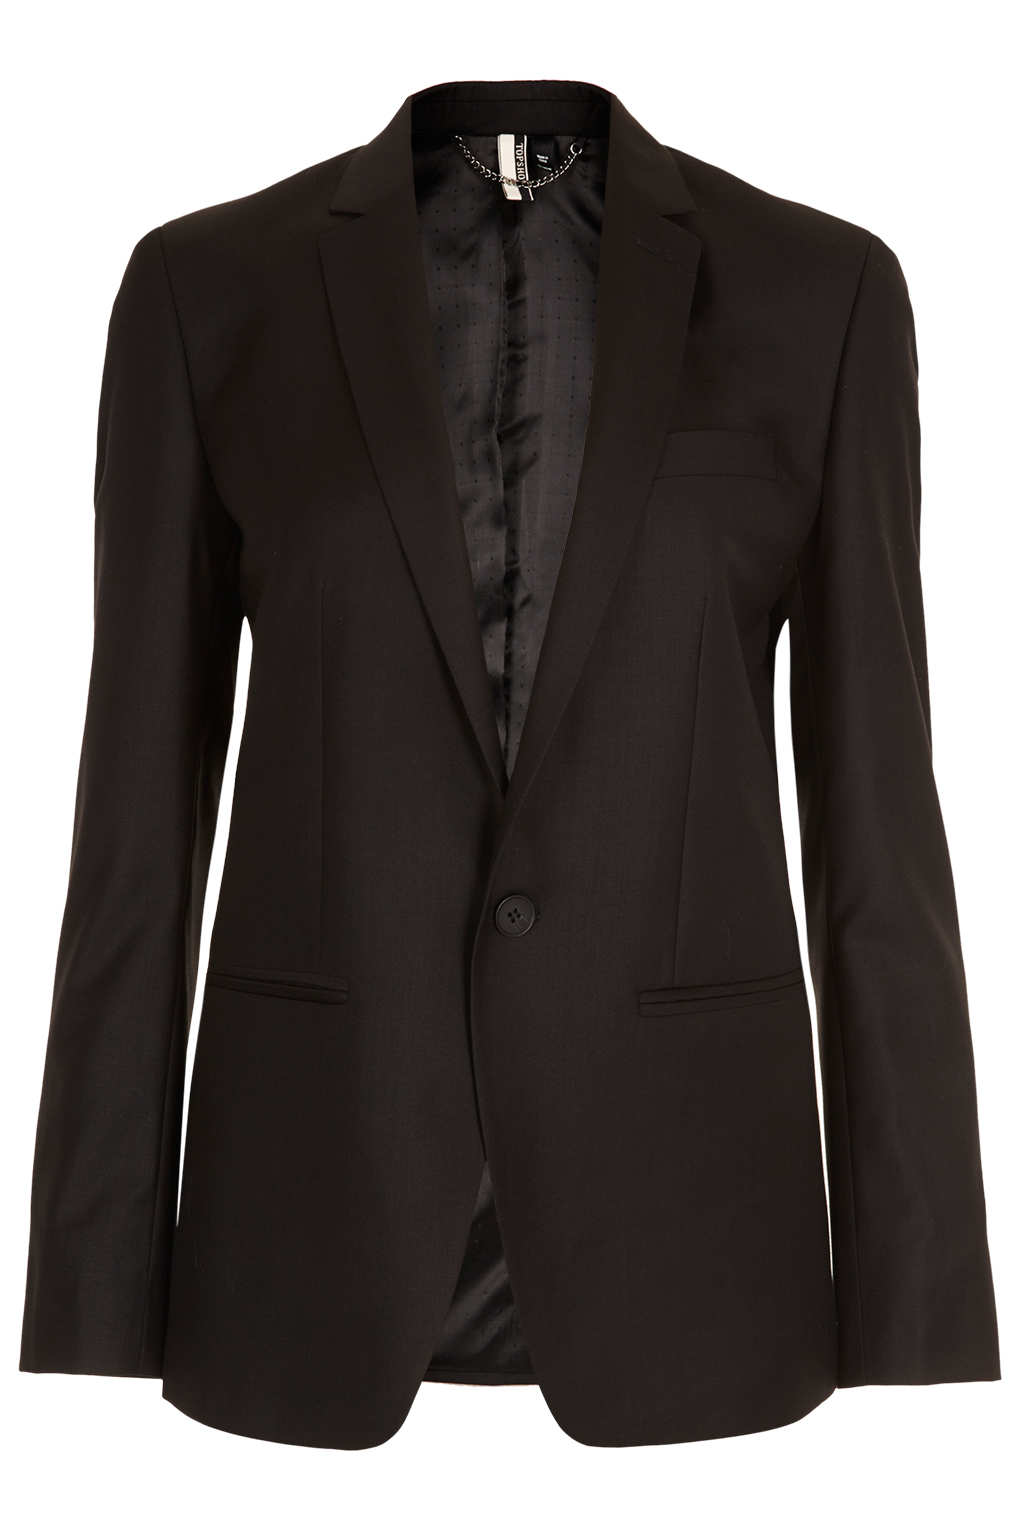 Tailored Suit Blazer, $130 at Topshop